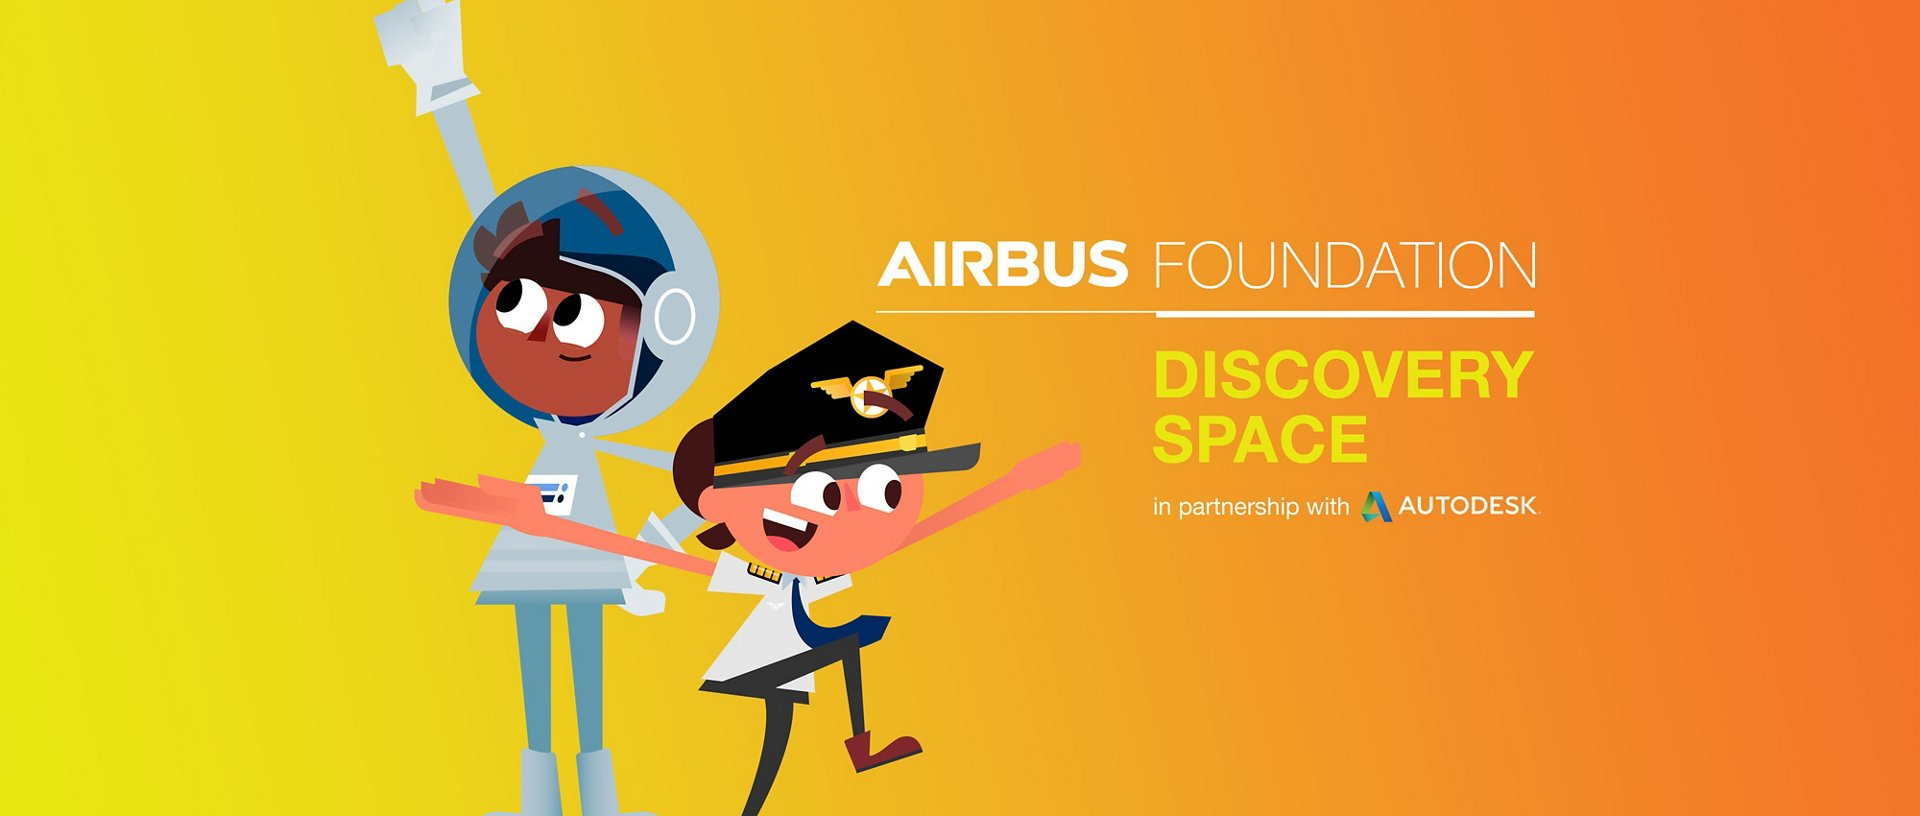 Airbus Foundation Discovery Space logo with boy astronaut and girl pilot cartoon characters